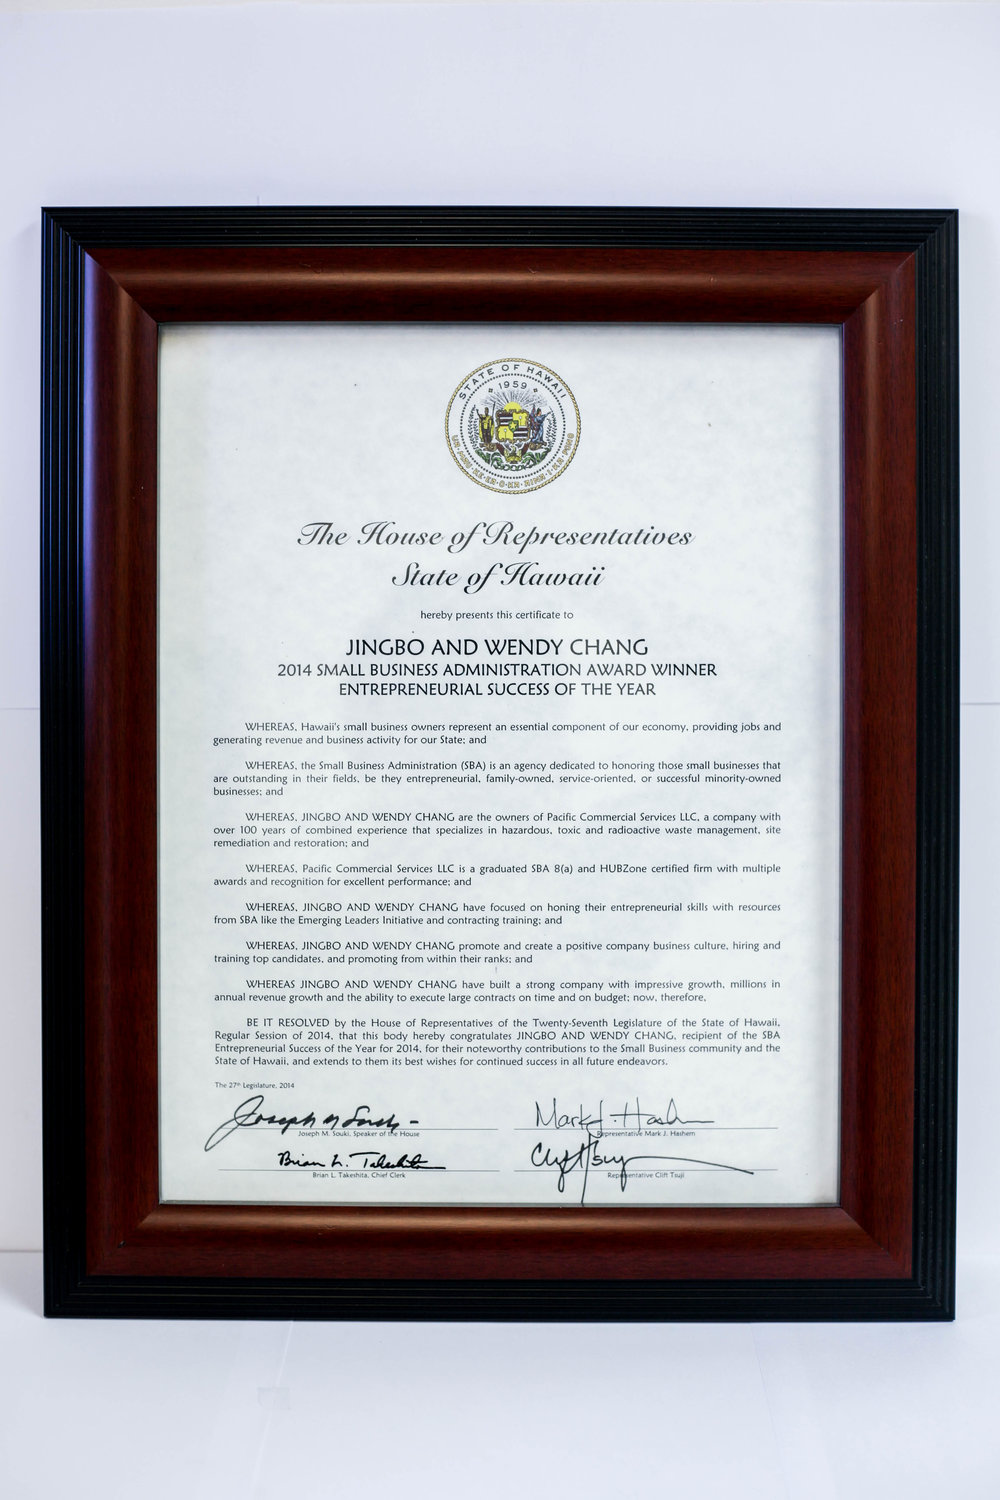 2014 SBA Entrepreneurial Success - Awarded by the House of Representatives of Hawaii